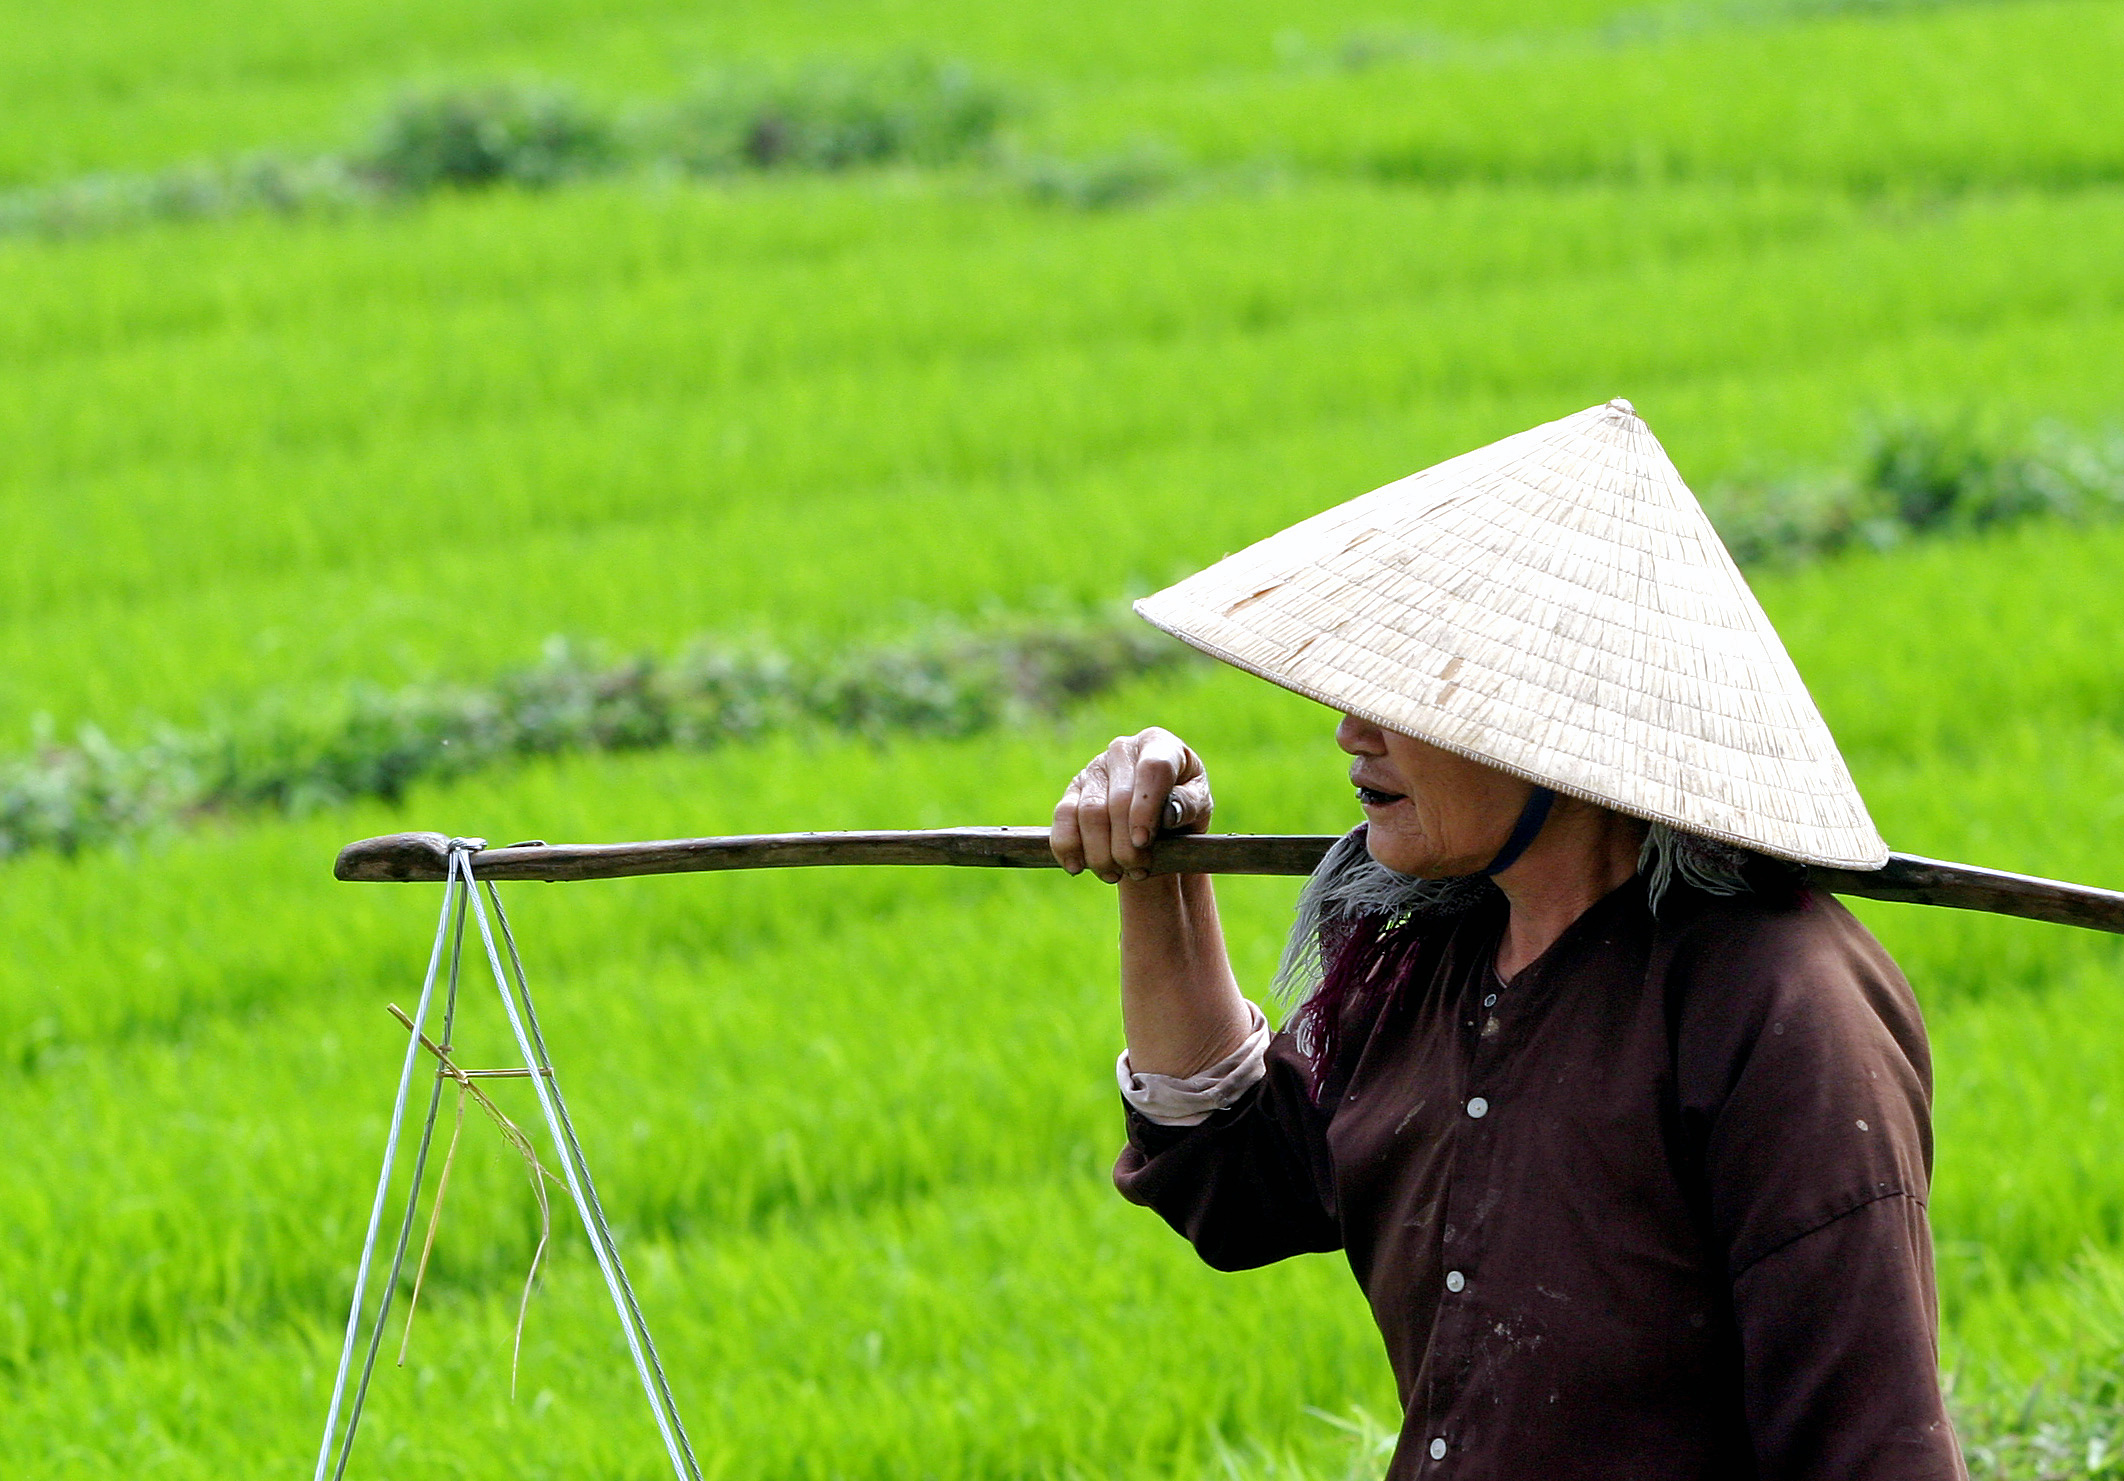 the economic growth and future of vietnam Vietnam has benefited from a period of strong economic growth  it is expected  that vietnam's future growth will depend in part on government policies driving.